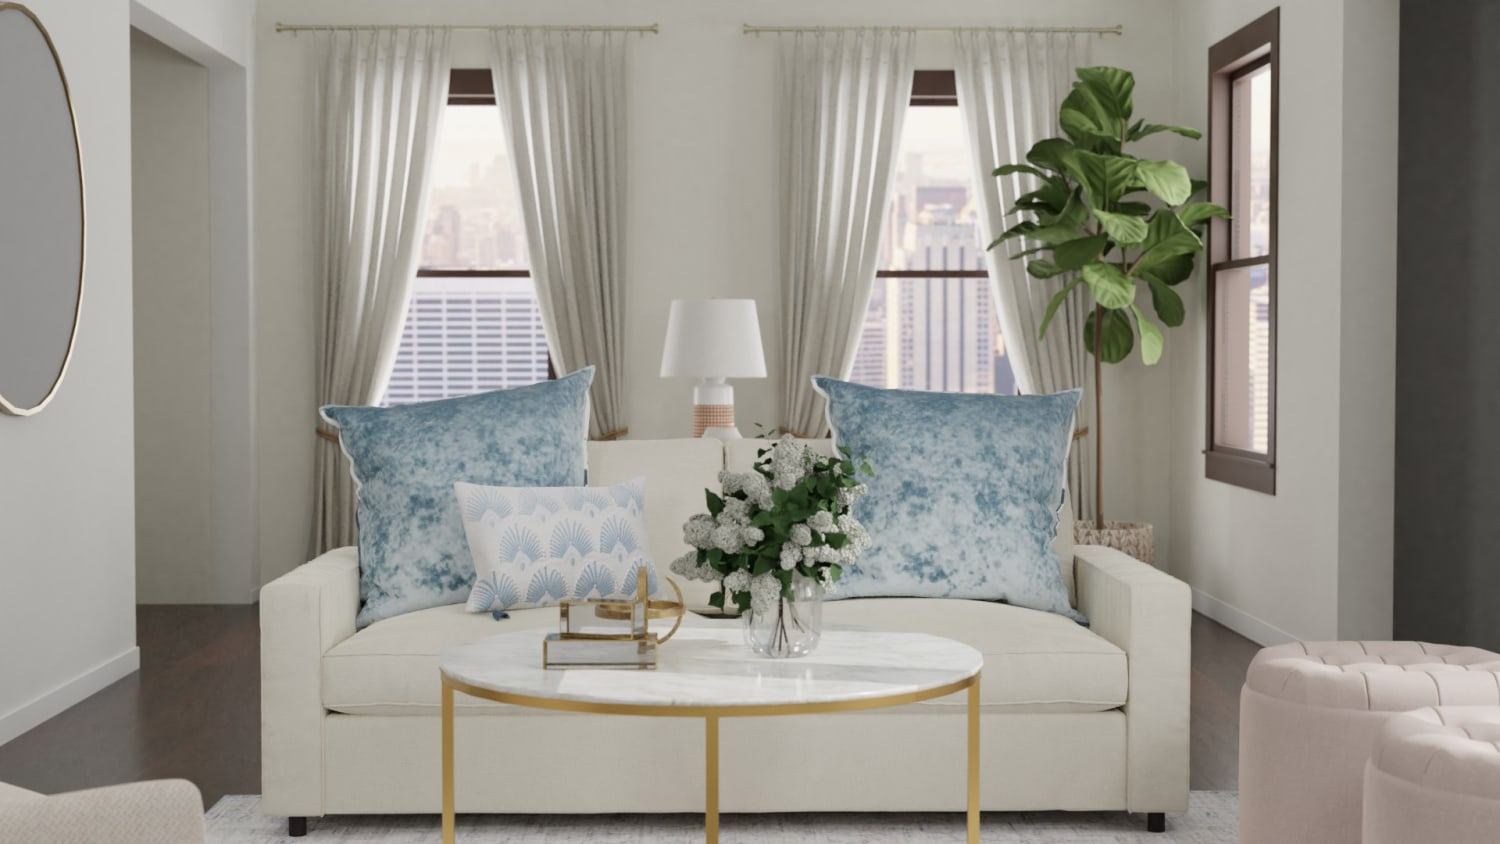 Sleeper Sofa + Lighter Fabrics: Transitional Coastal Living Room Design By Spacejoy